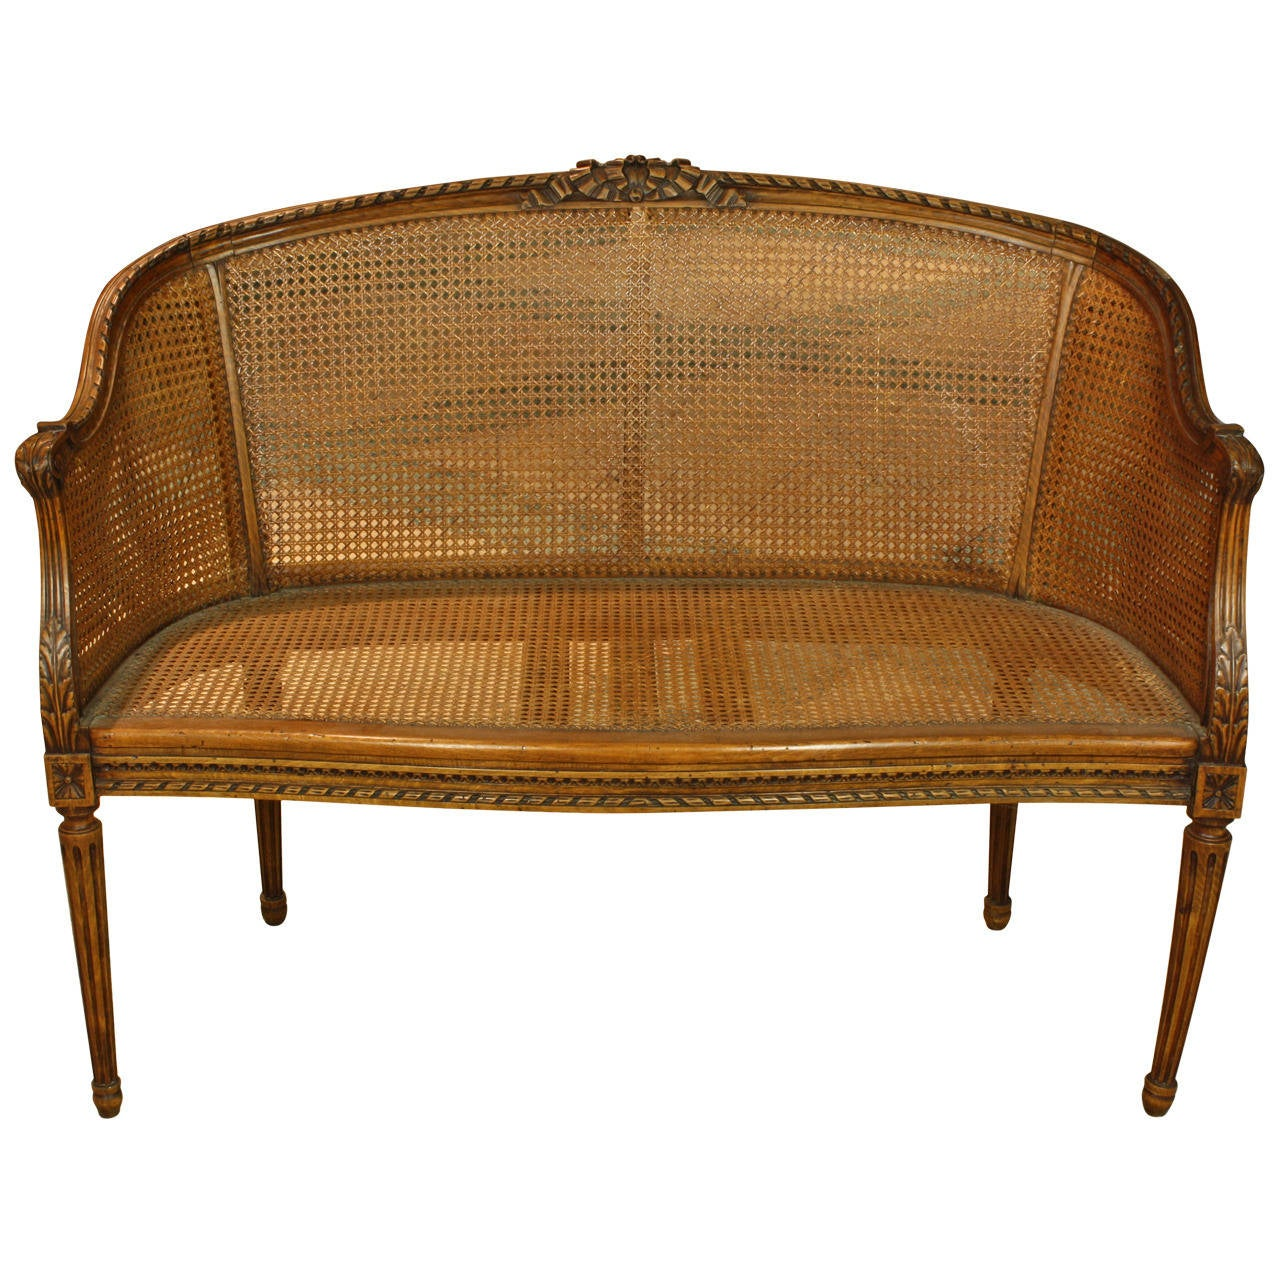 French Louis Xvi Style Caned Fruitwood Settee At 1stdibs